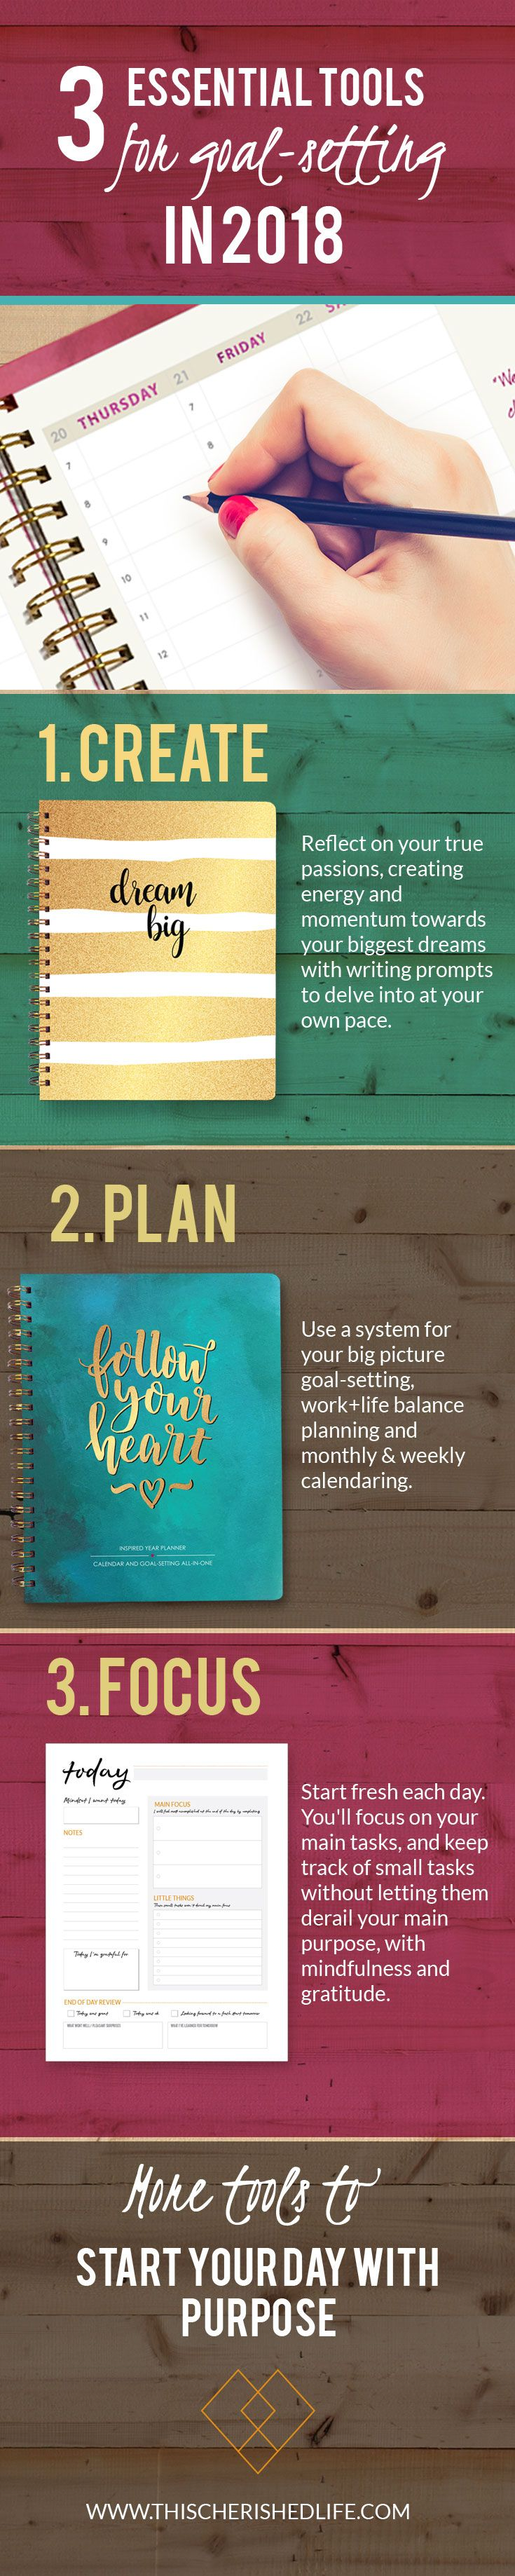 2018 Goal-Setting: Create. Plan. Focus: A 3-step approach for living each day with purpose